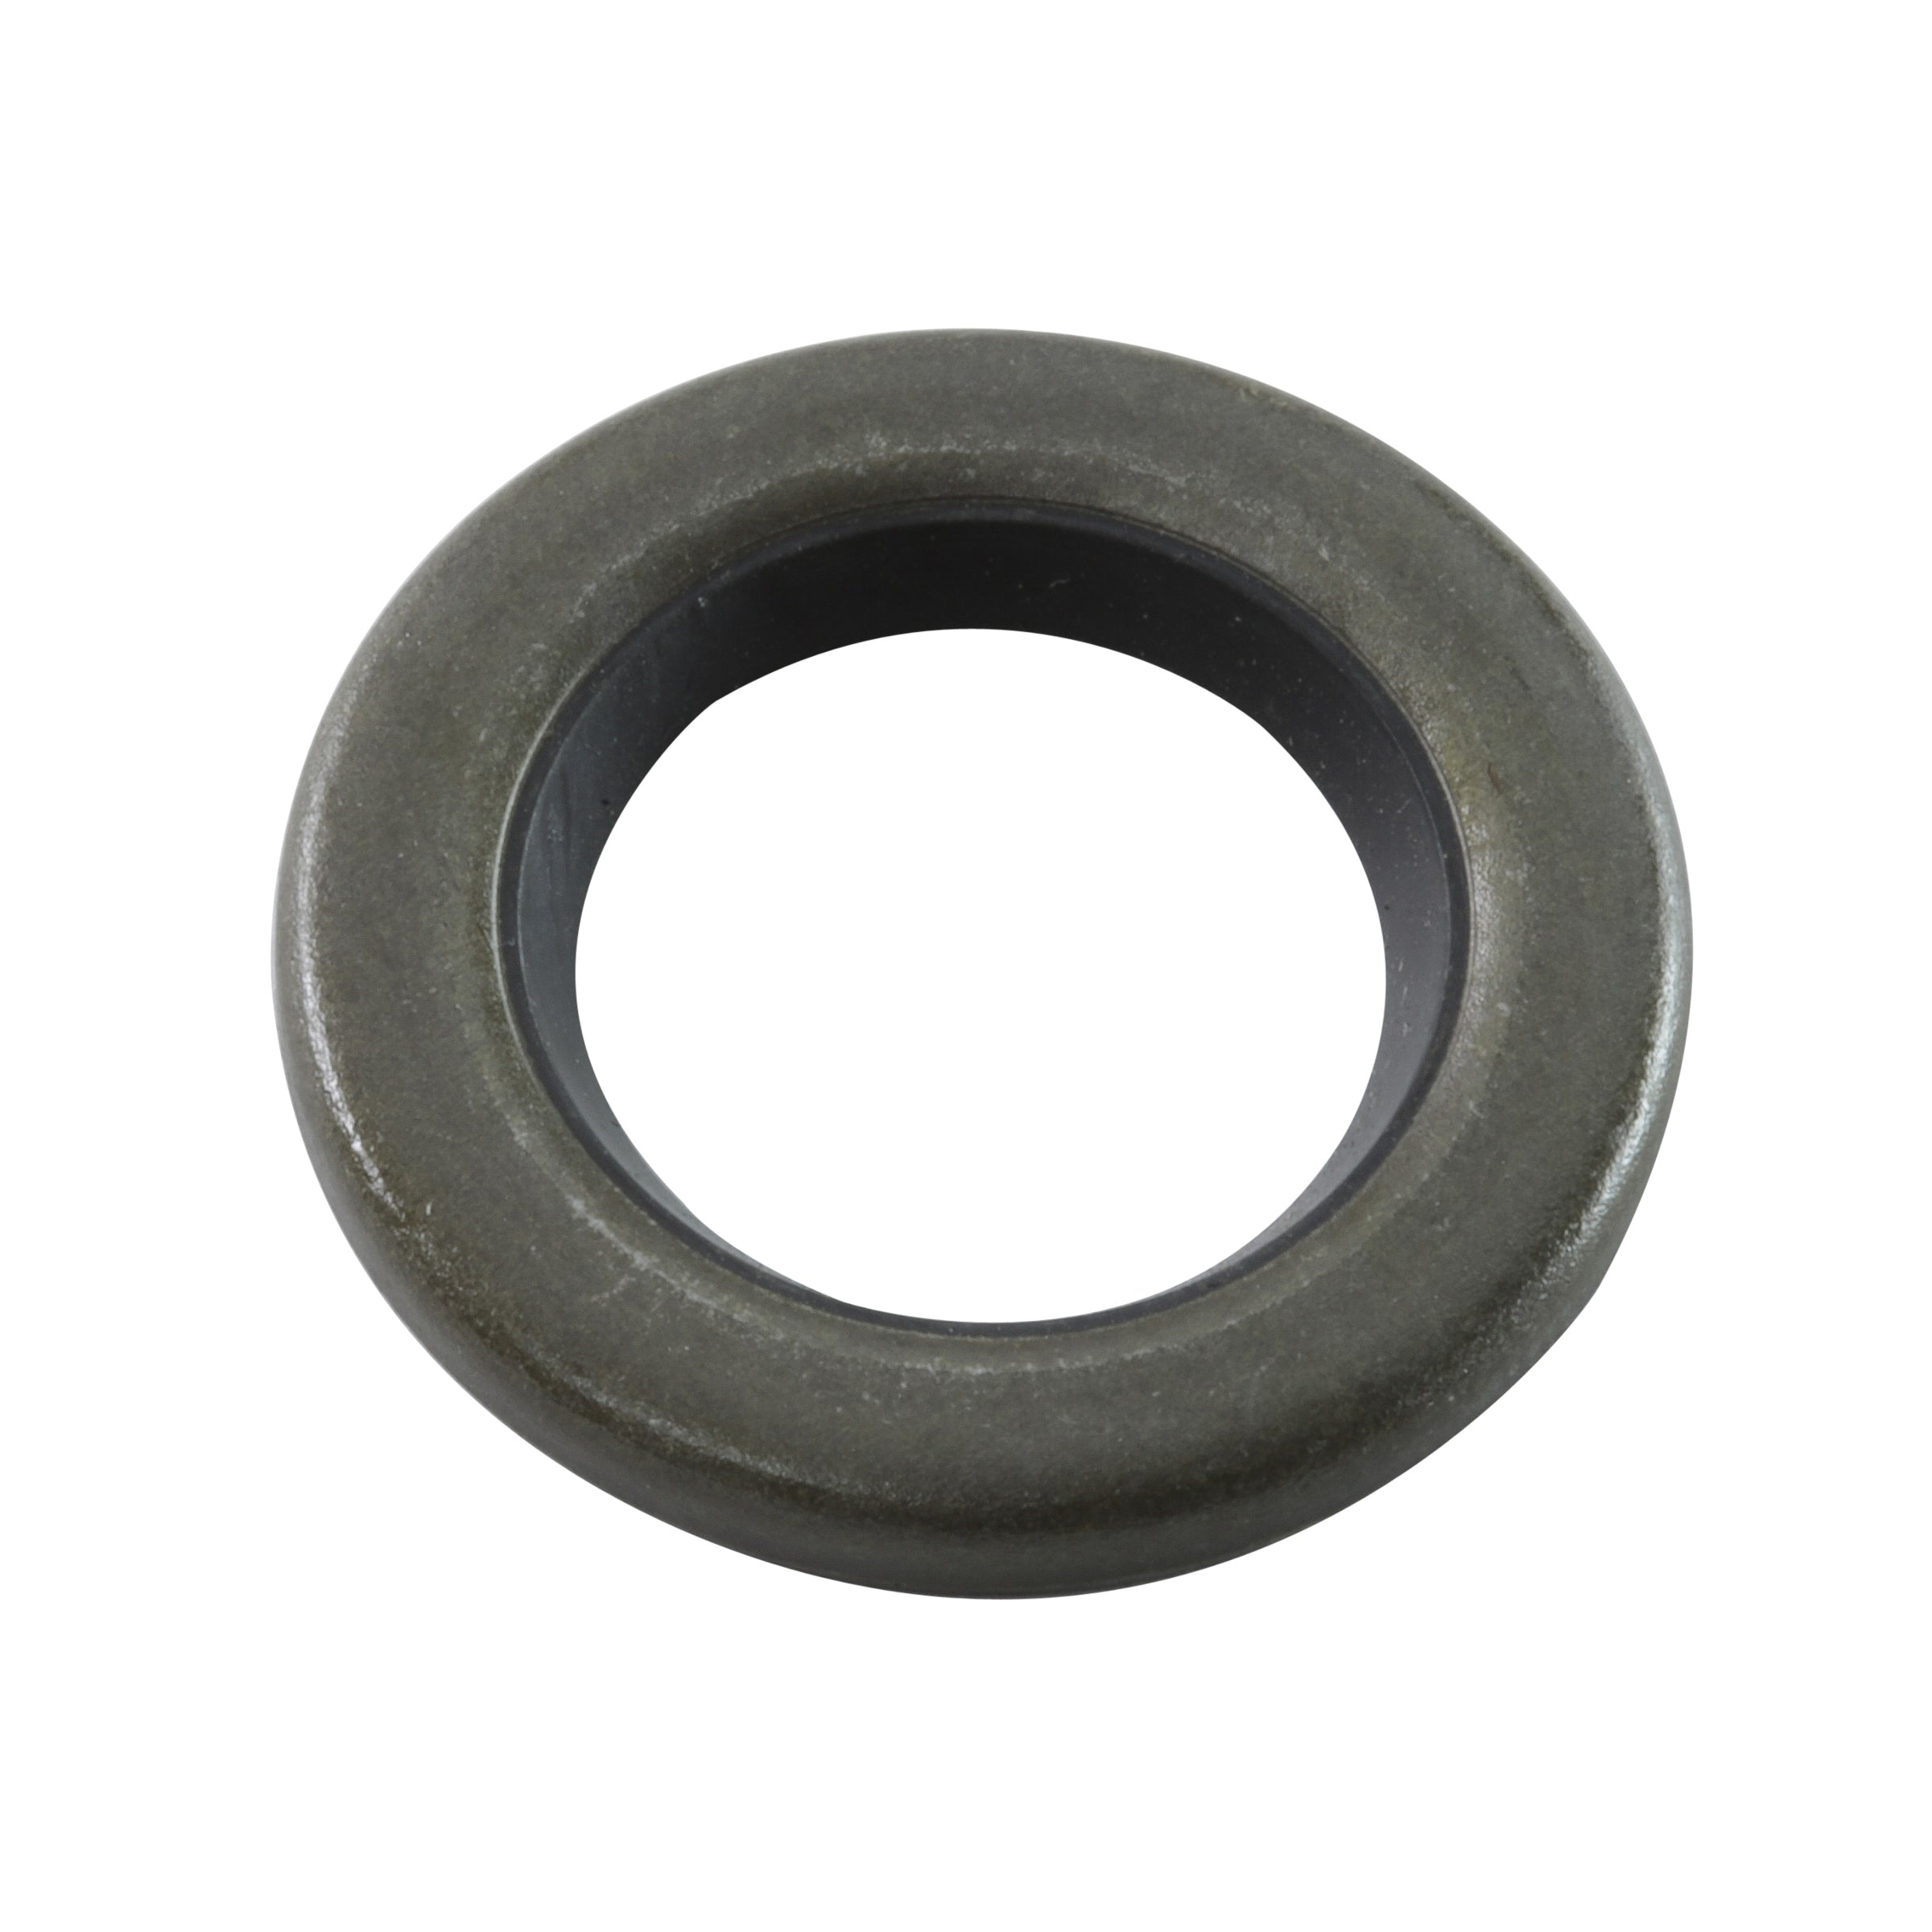 Column Shift Cover Oil Seal • 1940-48